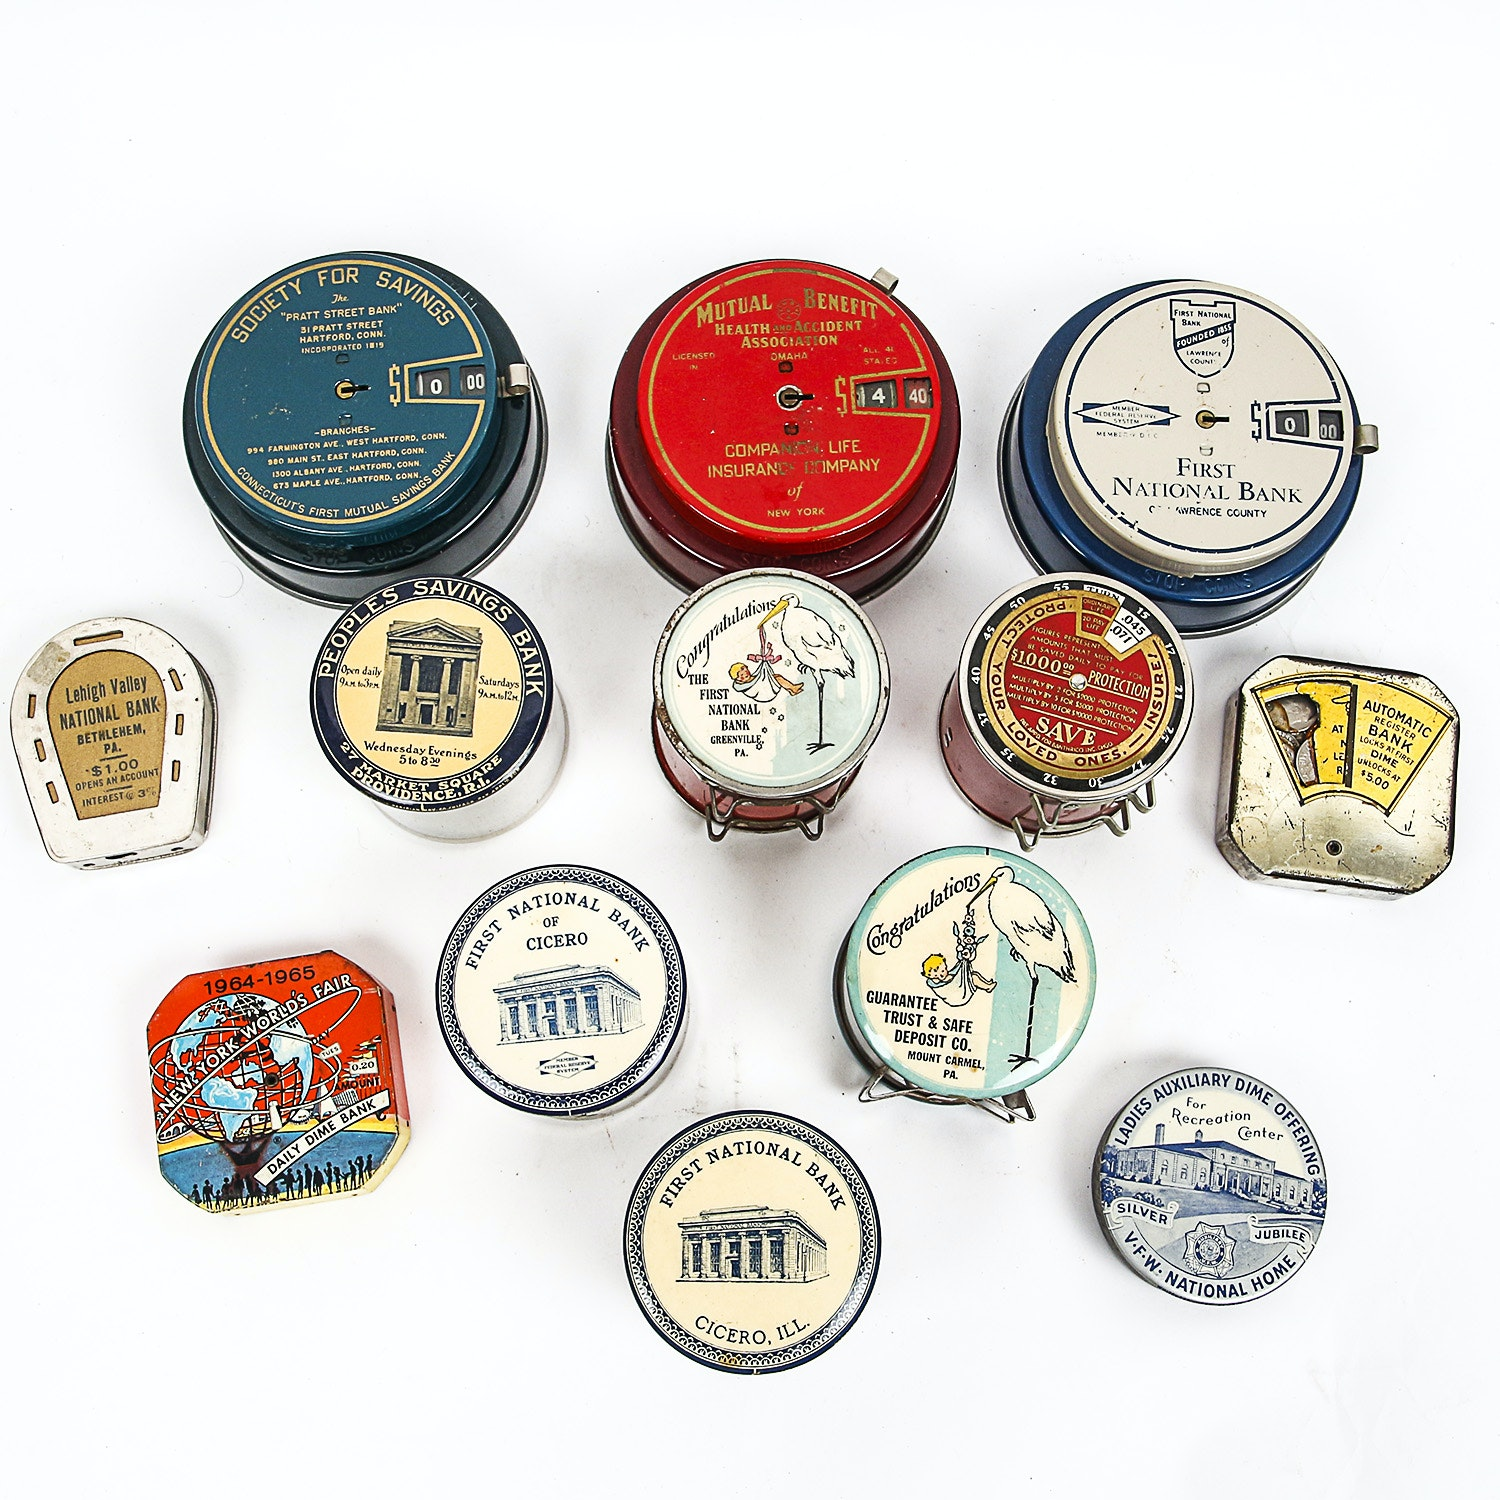 Vintage Metal Coin Banks, Including Add-A-Coin Banks and 1961